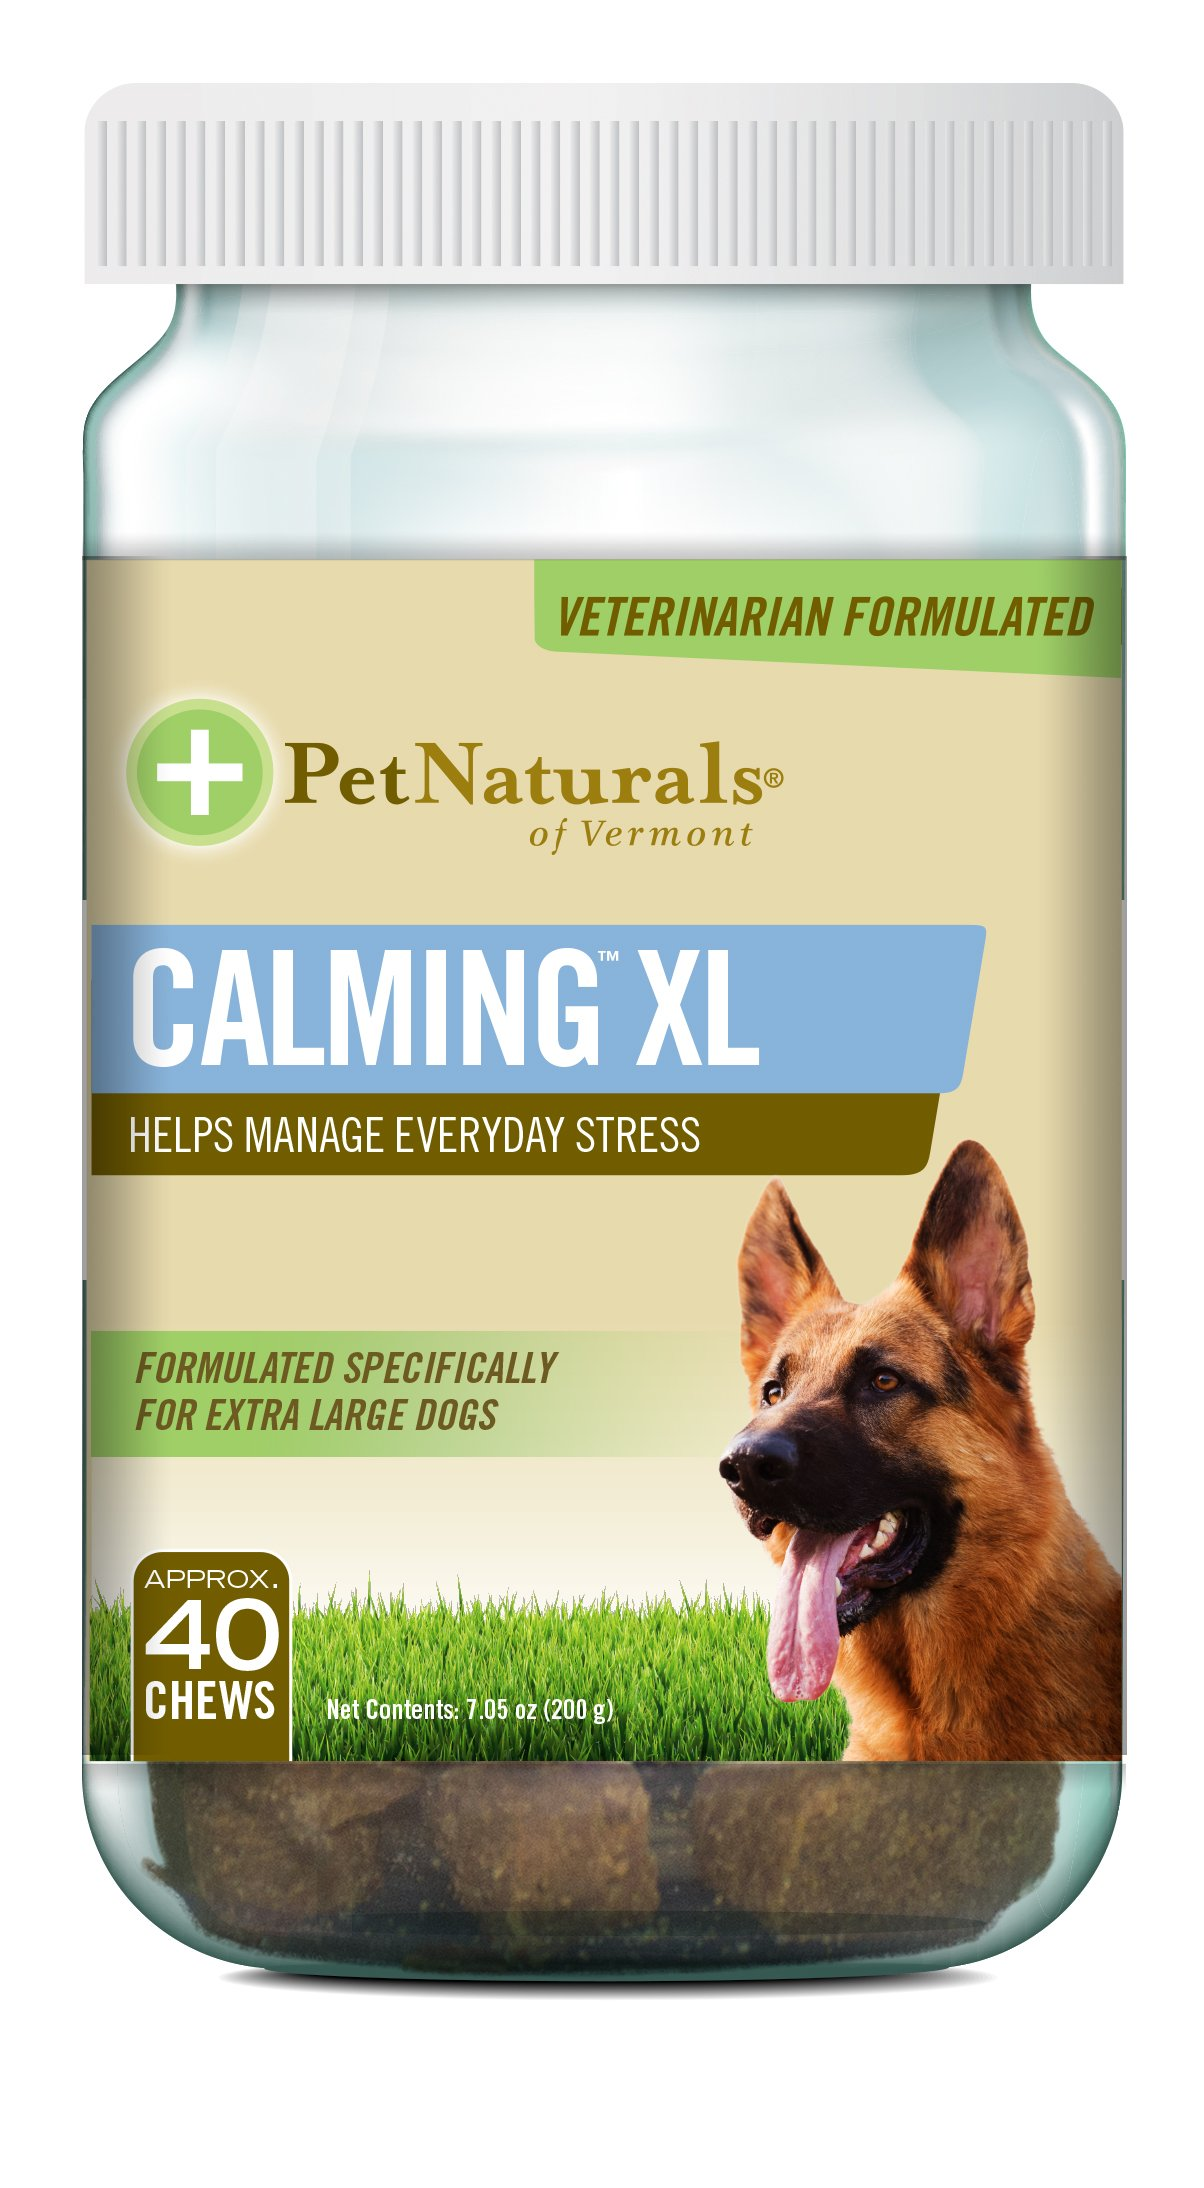 Pet Naturals of Vermont - Calming XL, Behavior Support Supplement for Dogs 75 LBS and Up, 40 Bite-Sized Chews